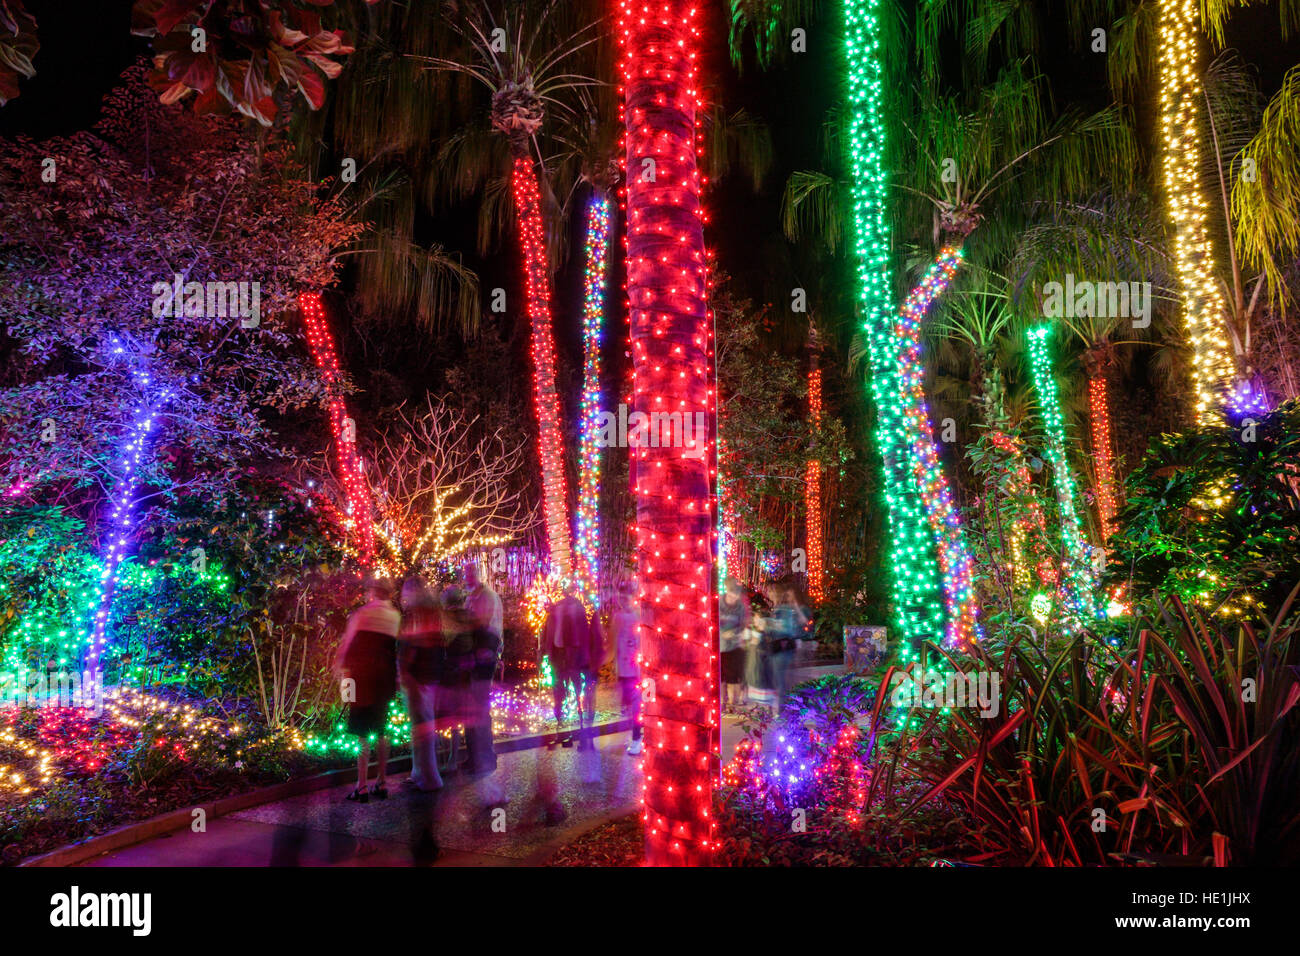 Largo Botanical Gardens Christmas Lights 2020 Selby Gardens Sarasota Christmas Lights 2020 Ford | Feyhbs